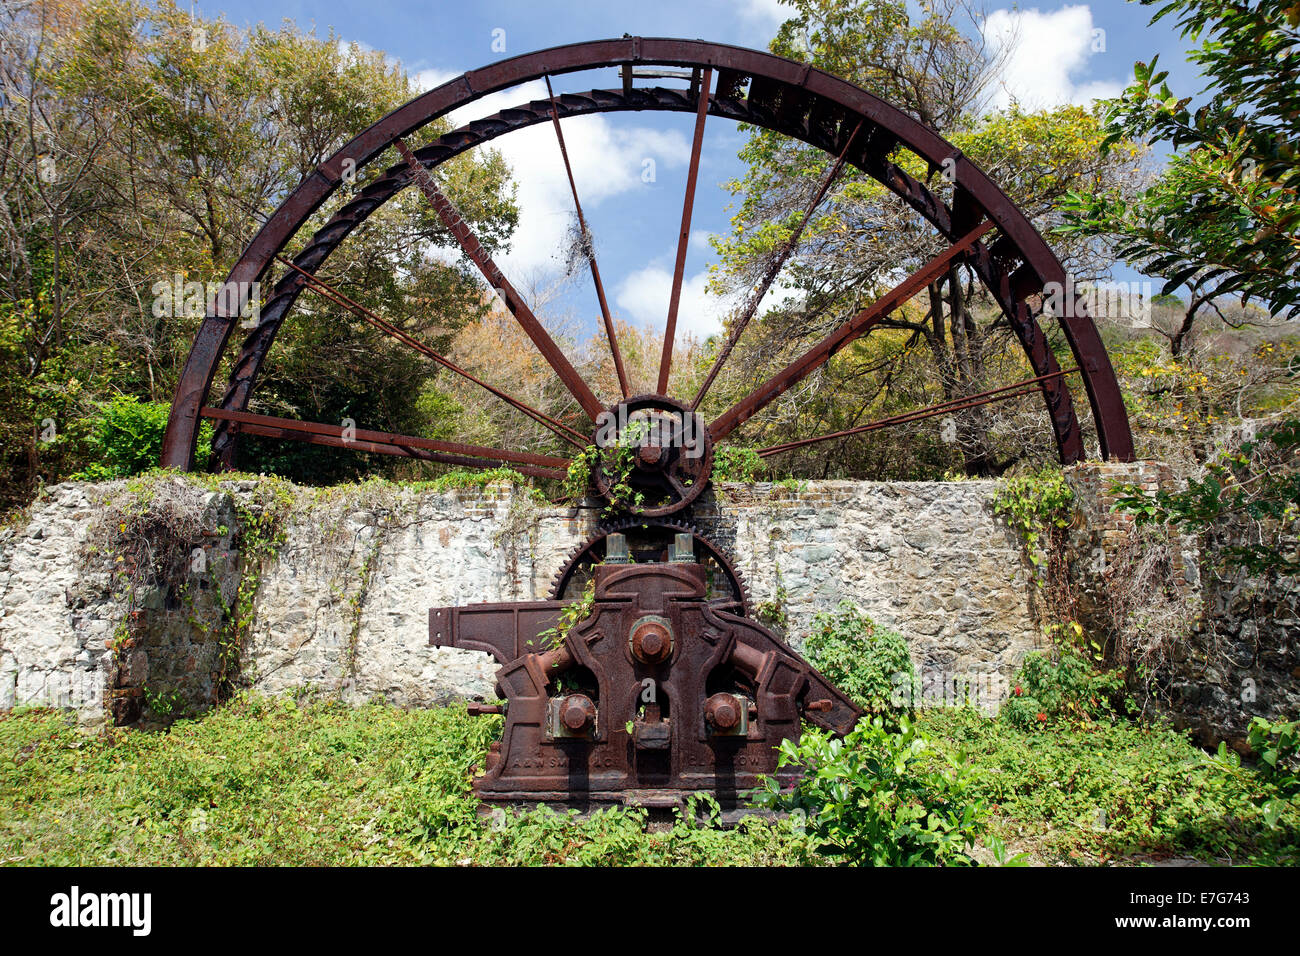 Old sugar cane mill, mill wheel, rusted, Trinidad and Tobago - Stock Image